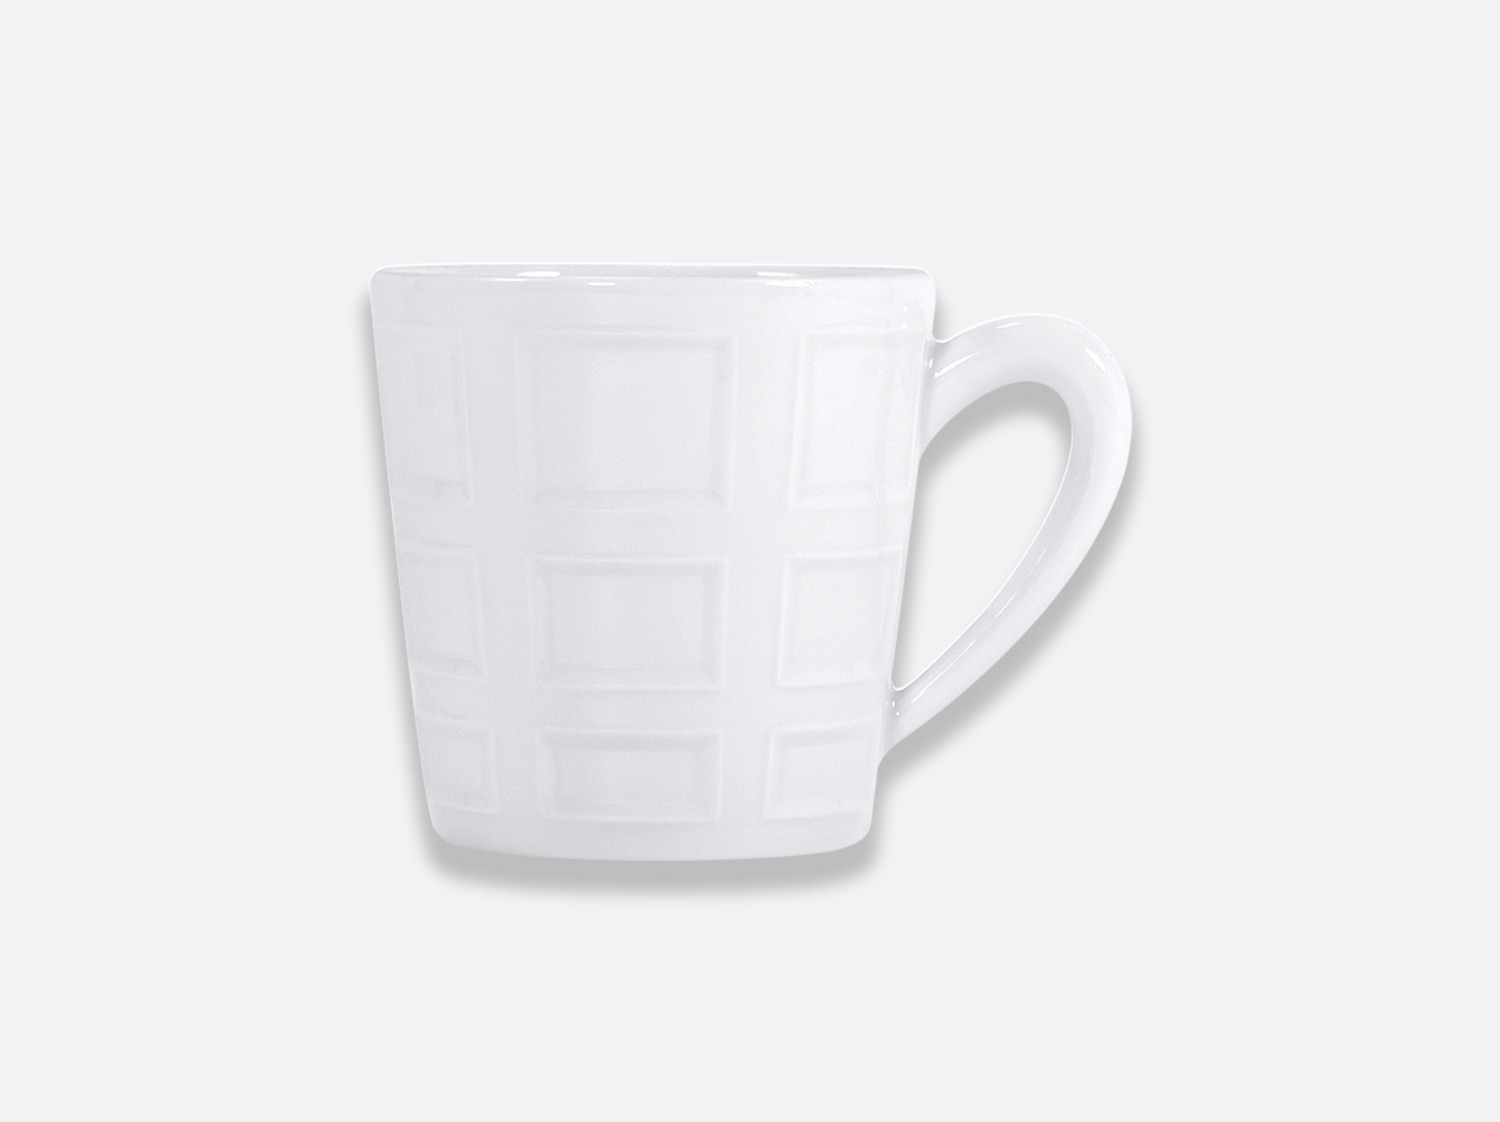 Mug 27 cl en porcelaine de la collection Naxos Bernardaud